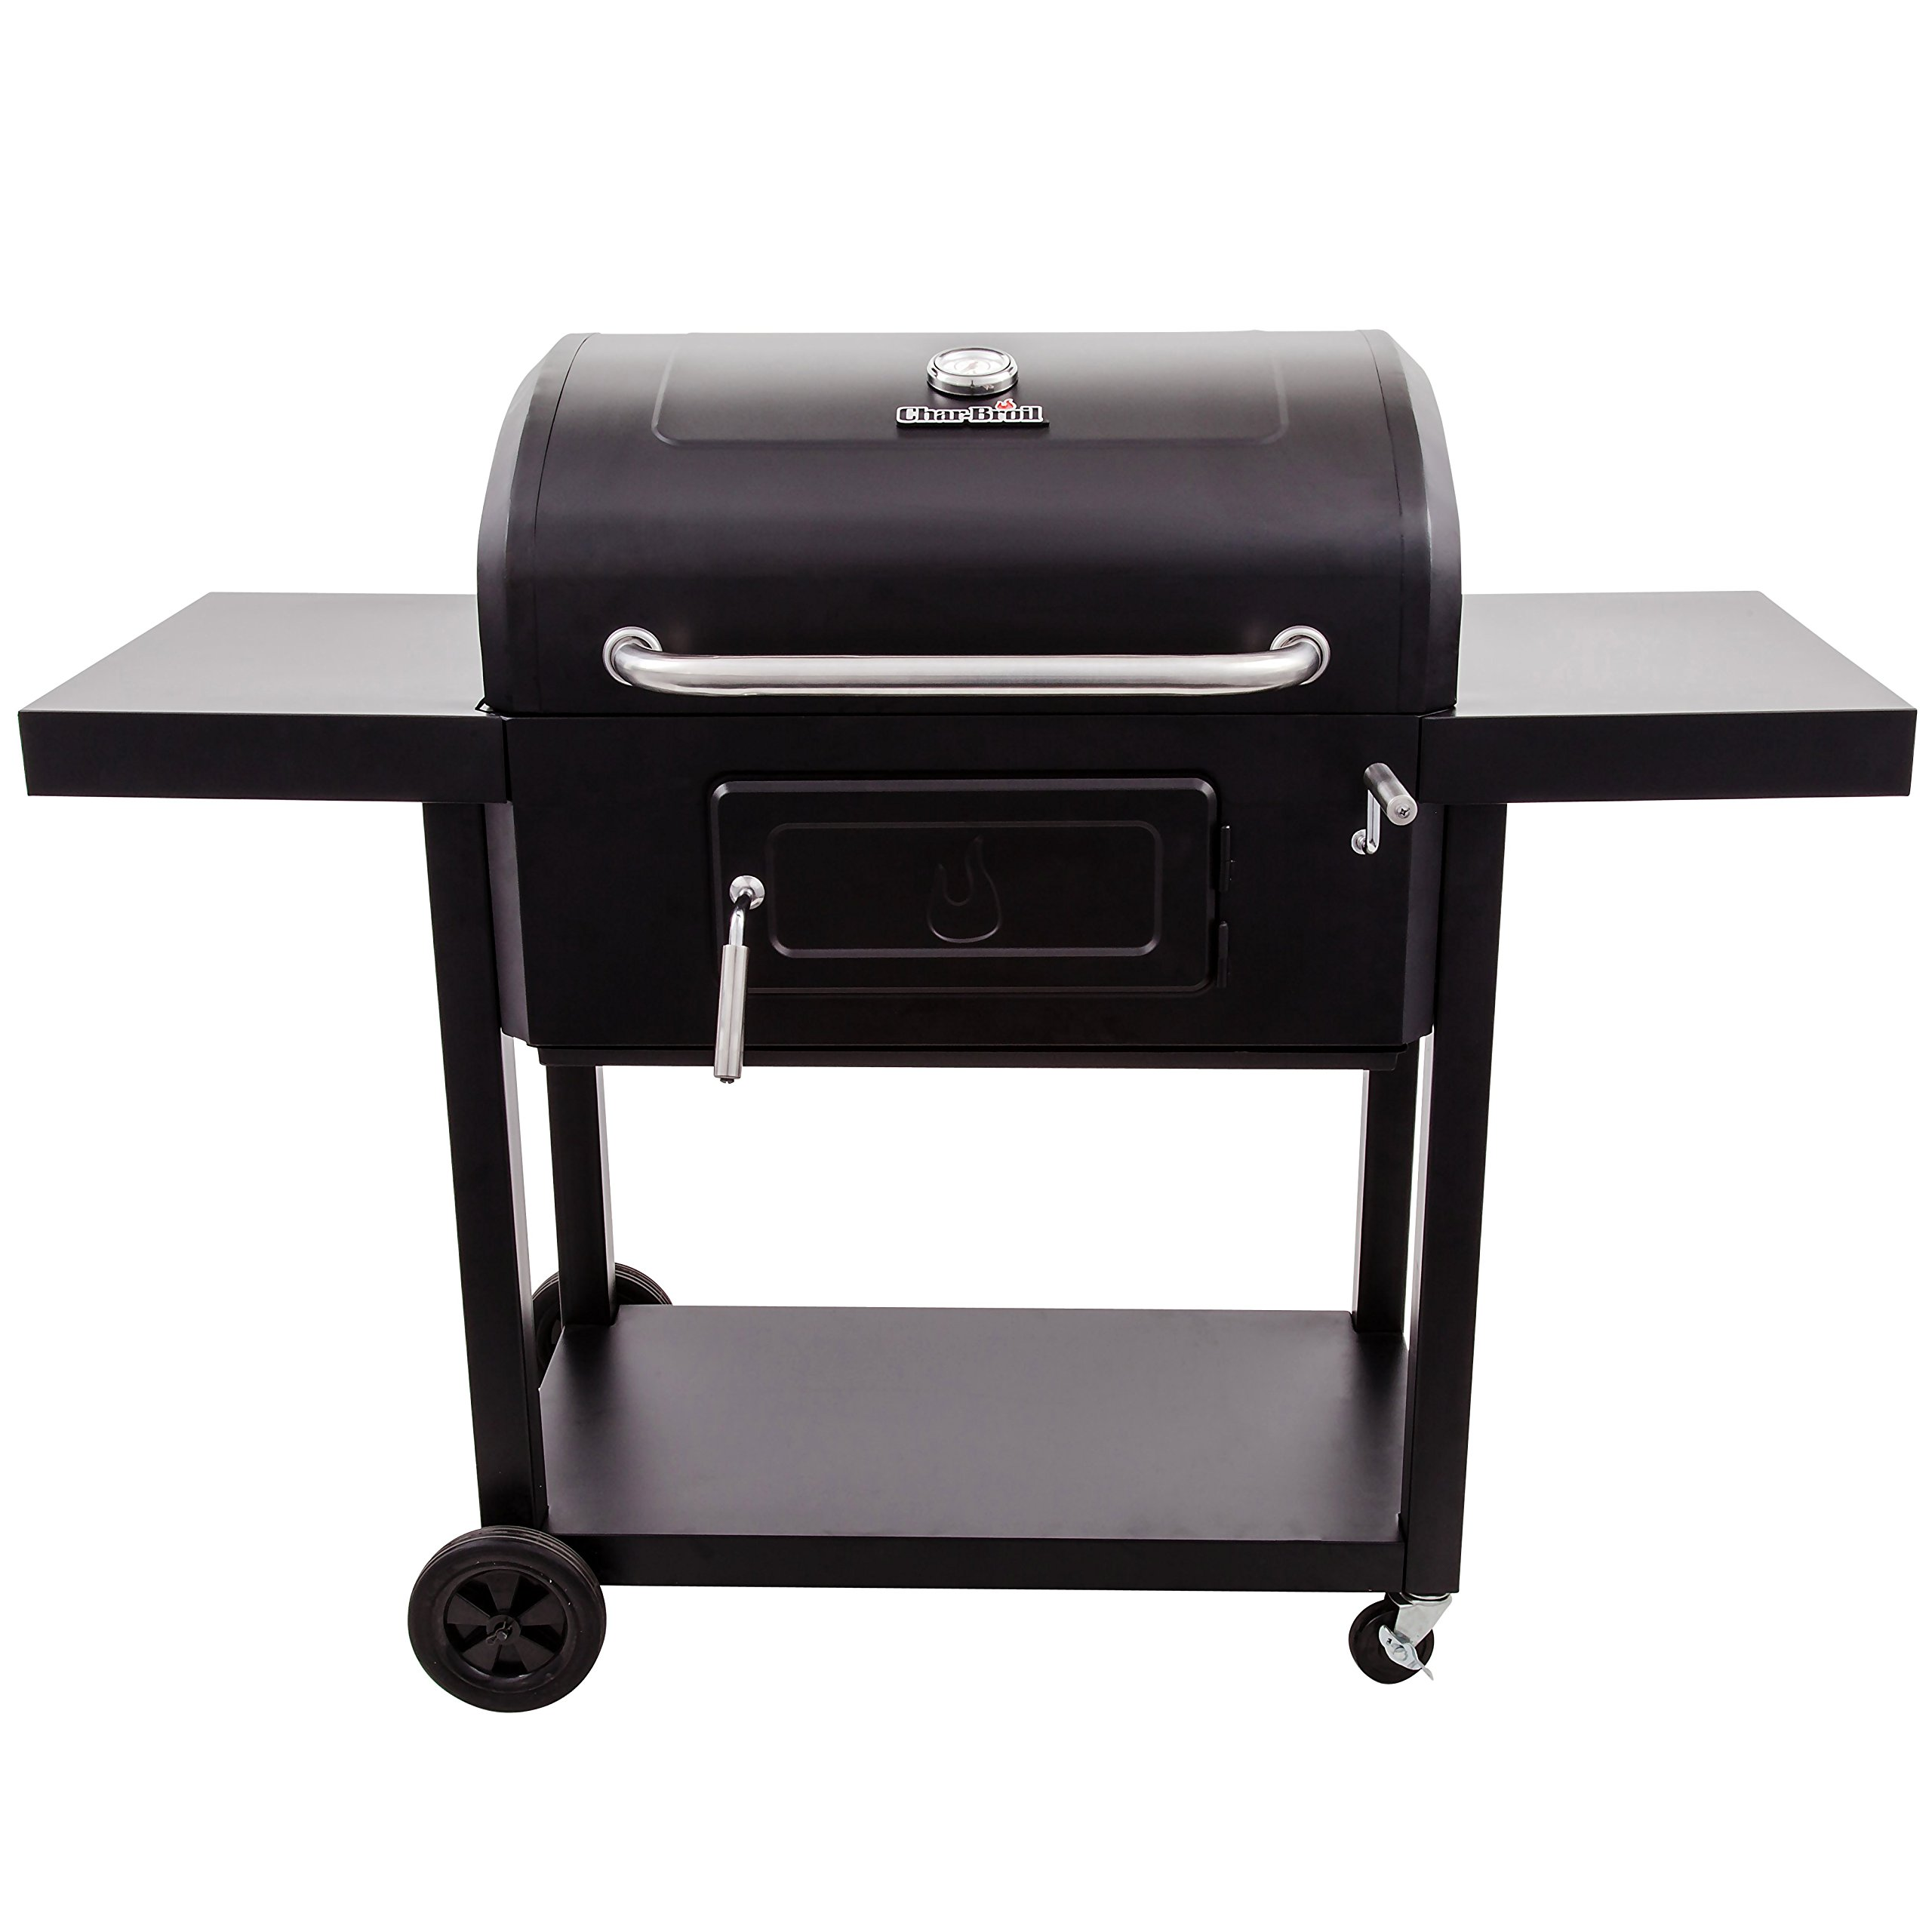 Char-Broil Charcoal Grill 780 - 5 Sq. Ft. Cooking Area - ...